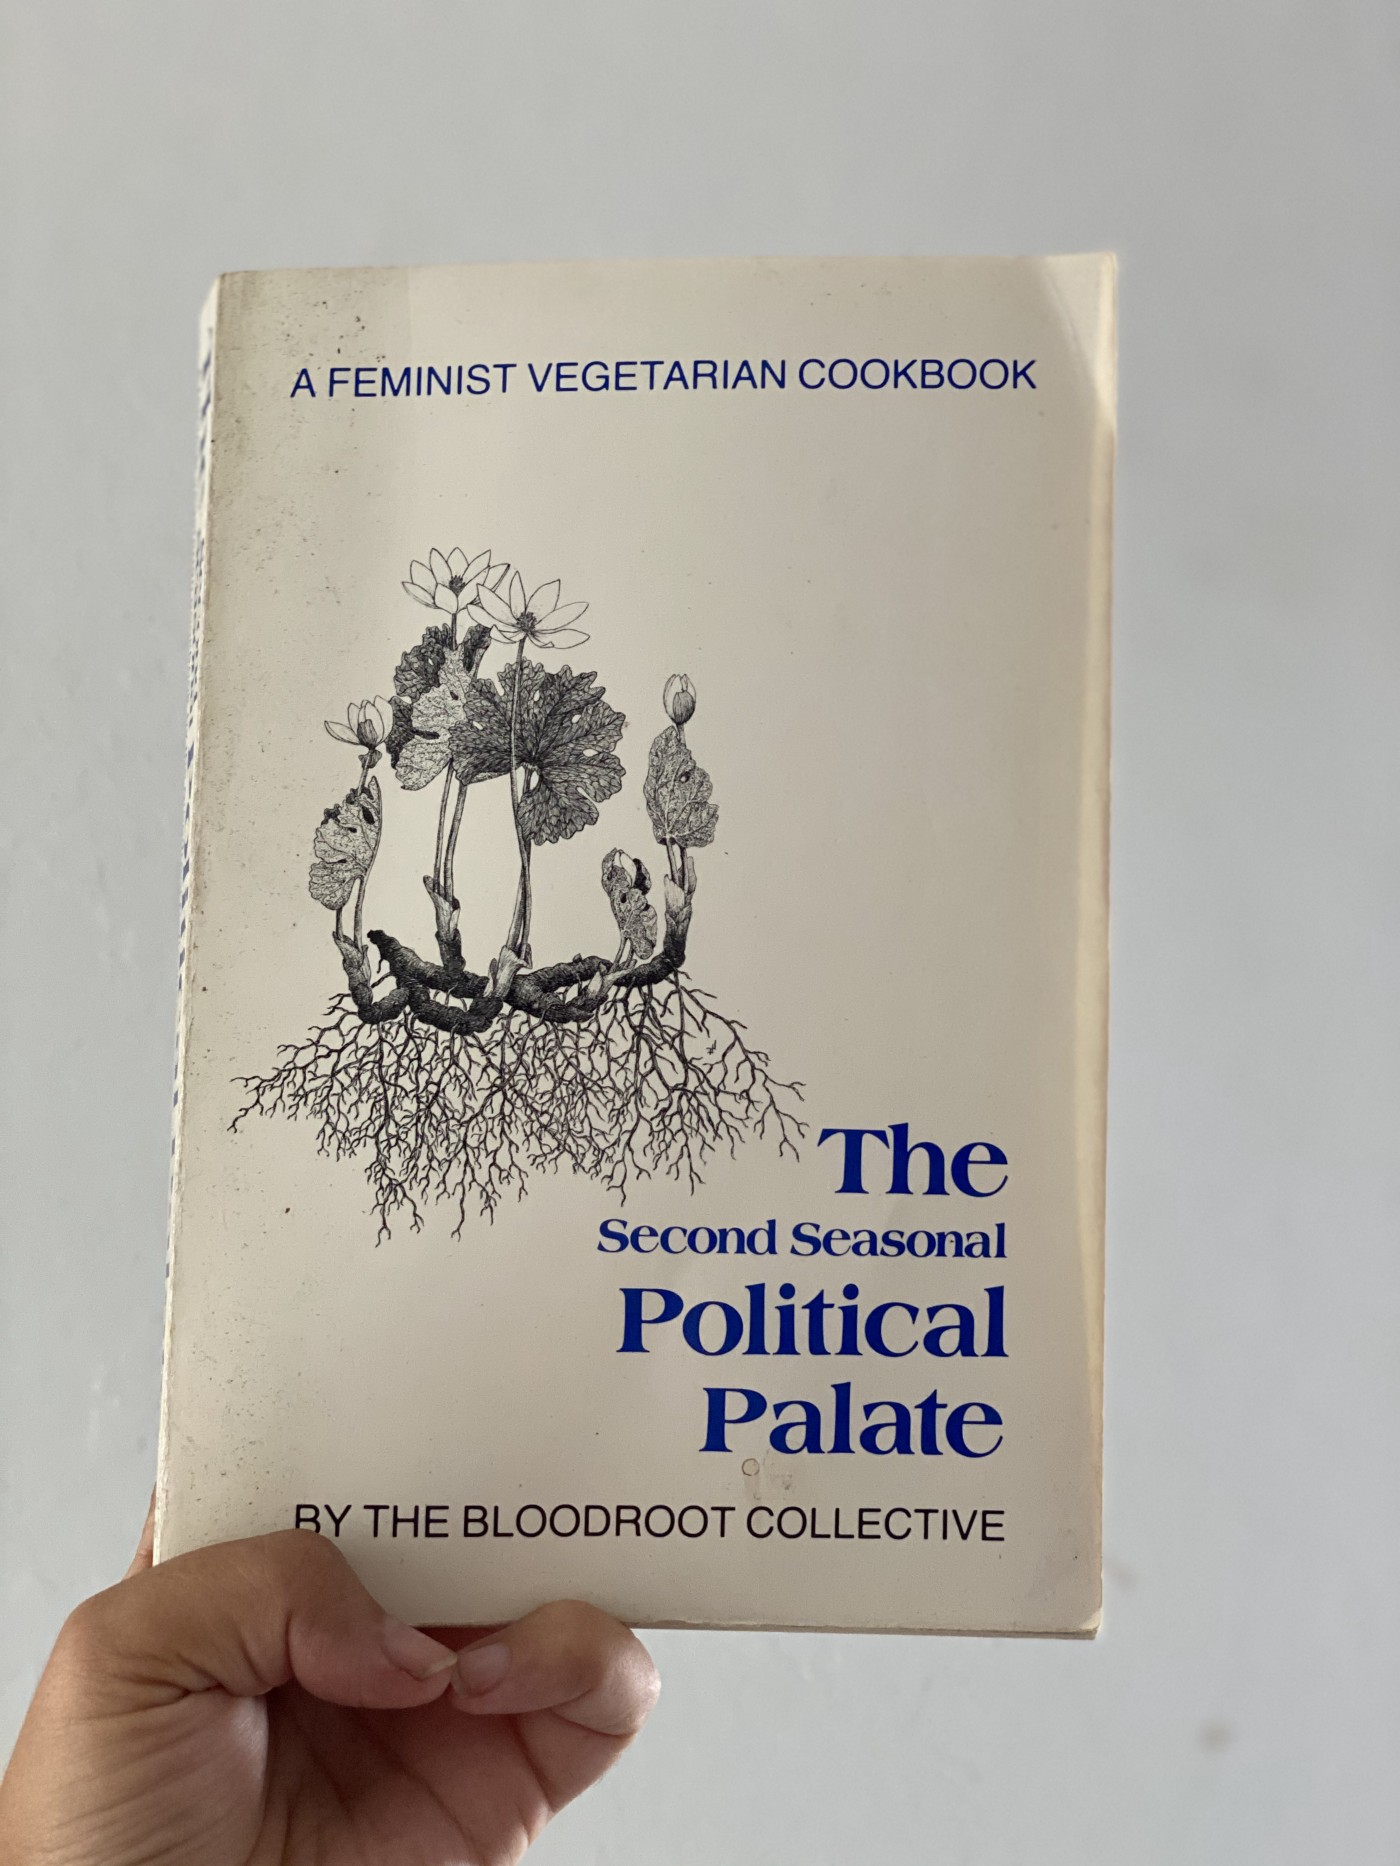 A photo of the book 'The Second Seasonal Political Palette' featuring a black and white floral illustration